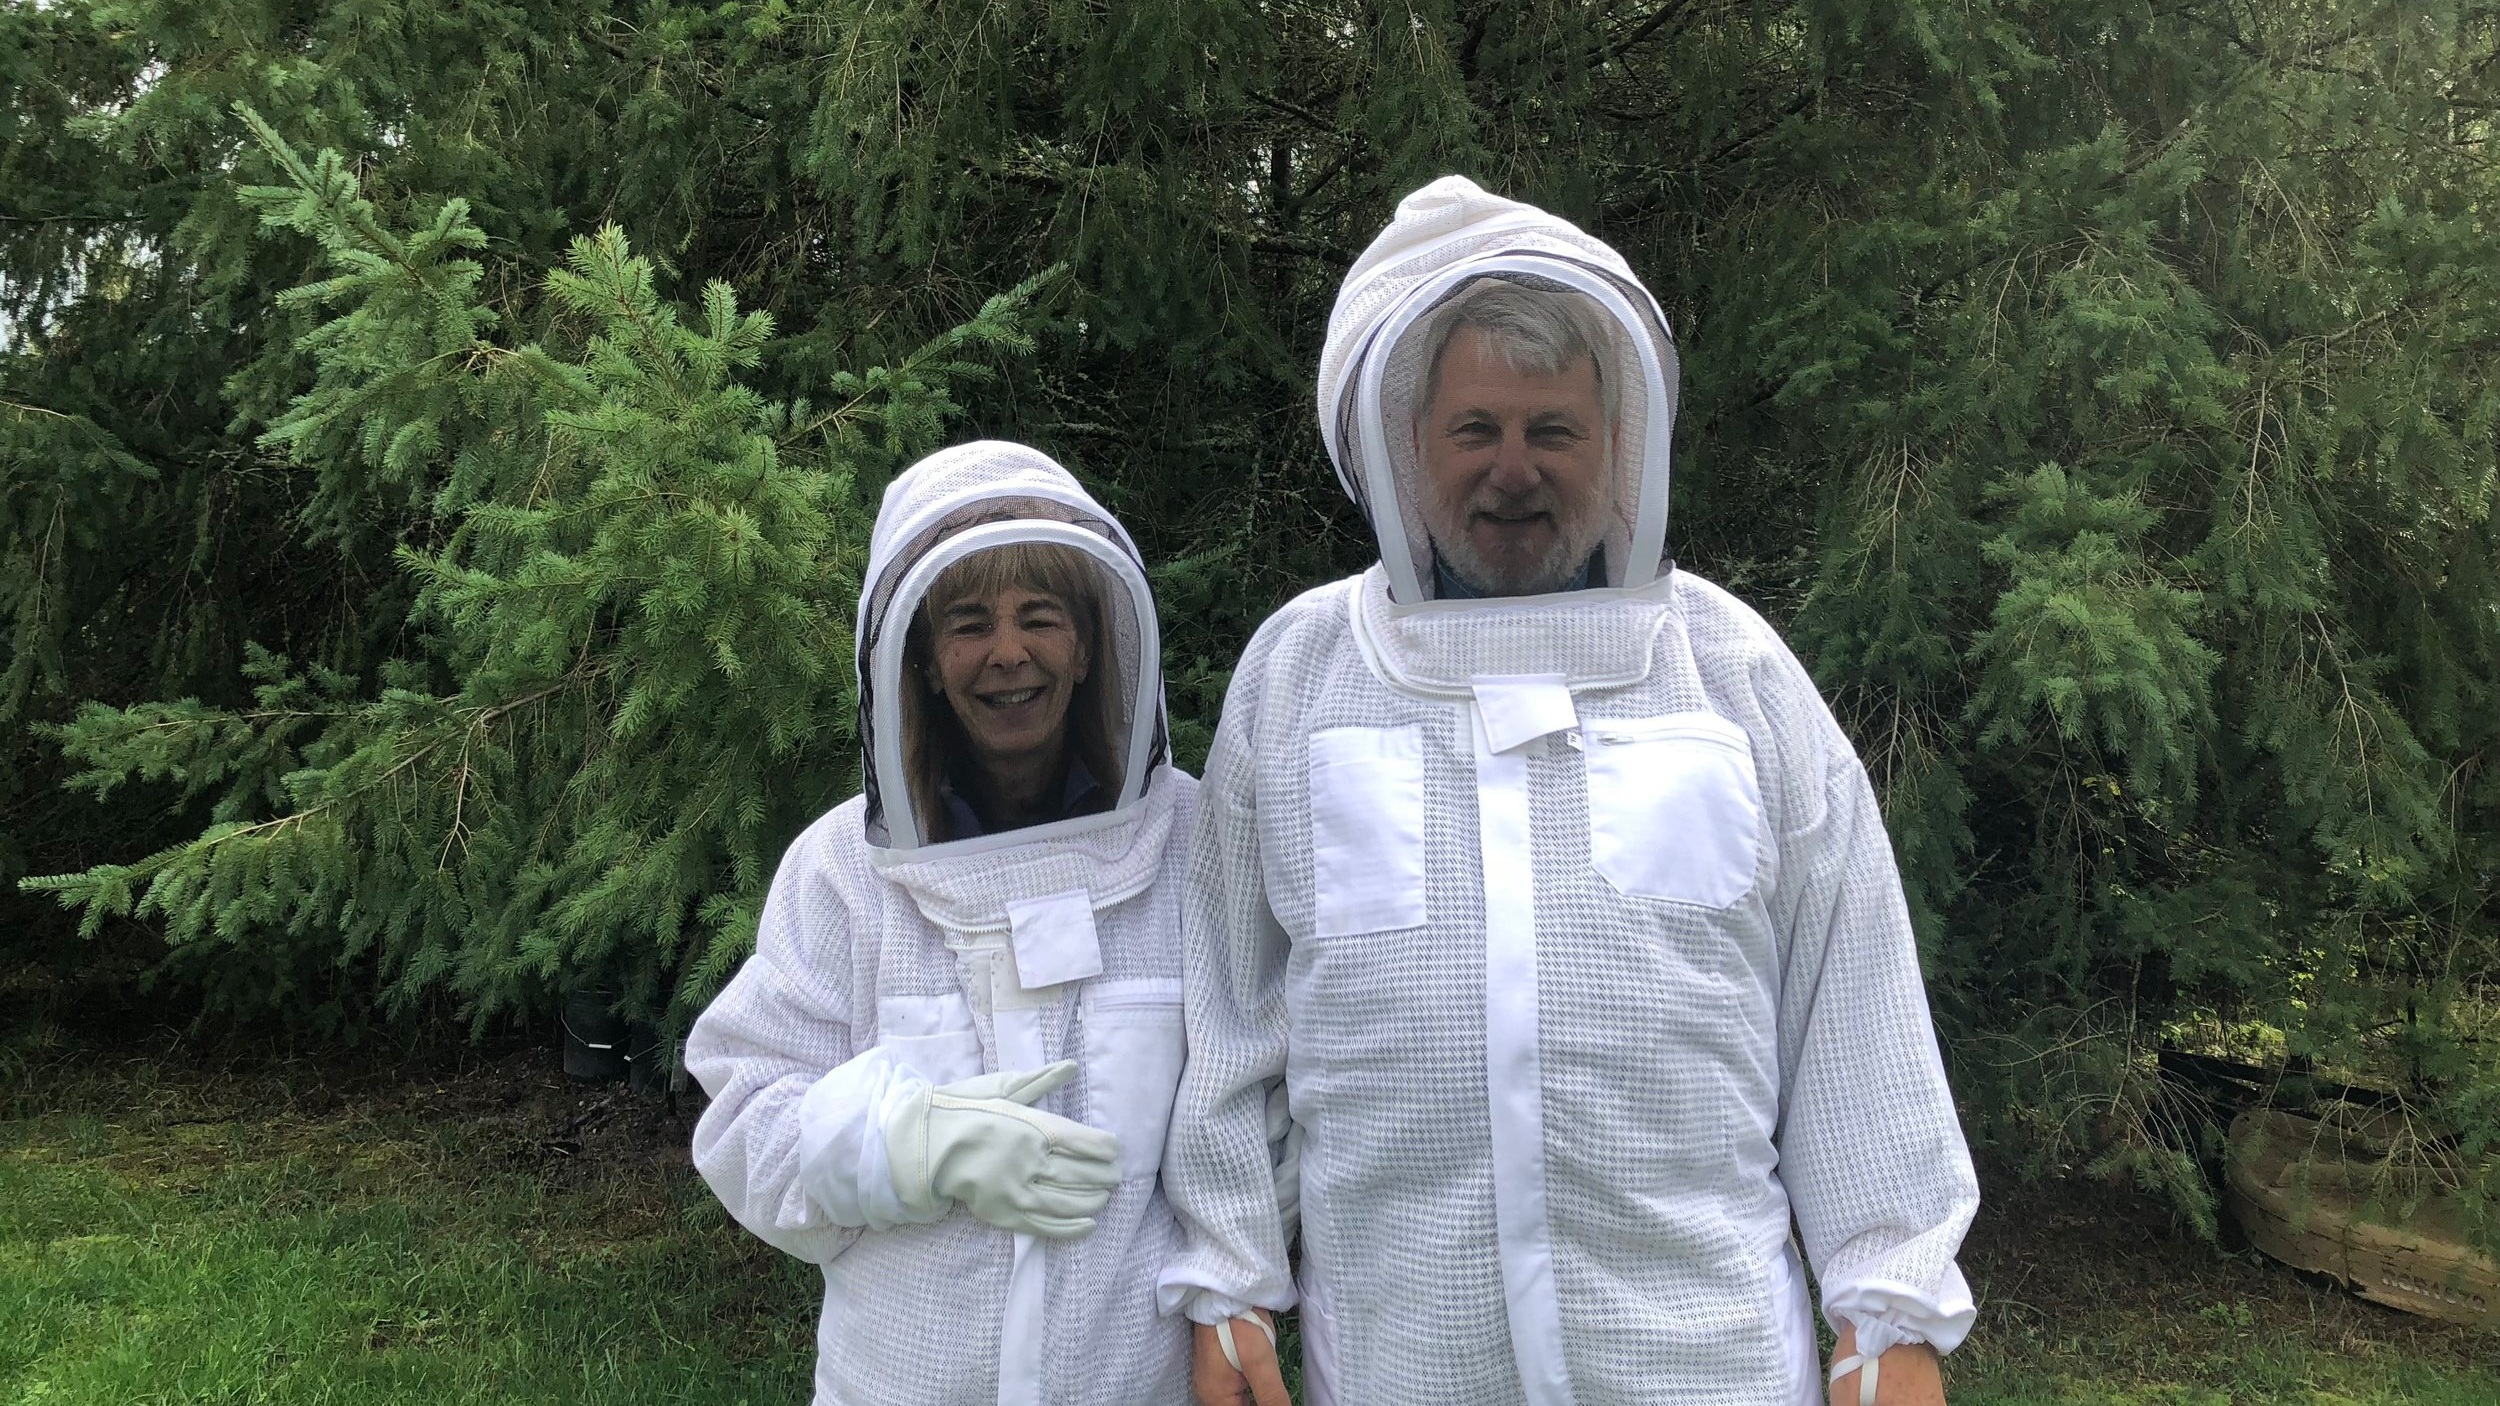 Beekeeping - When we discovered that honeybees are in danger of becoming extinct - around the world - we decided to become beekeepers. Living on a farm where our main purpose is to help heal the planet, we realize that beekeeping is essential. We are beekeeping because as we learn these very important skills, our goal is to pass that on to other people.